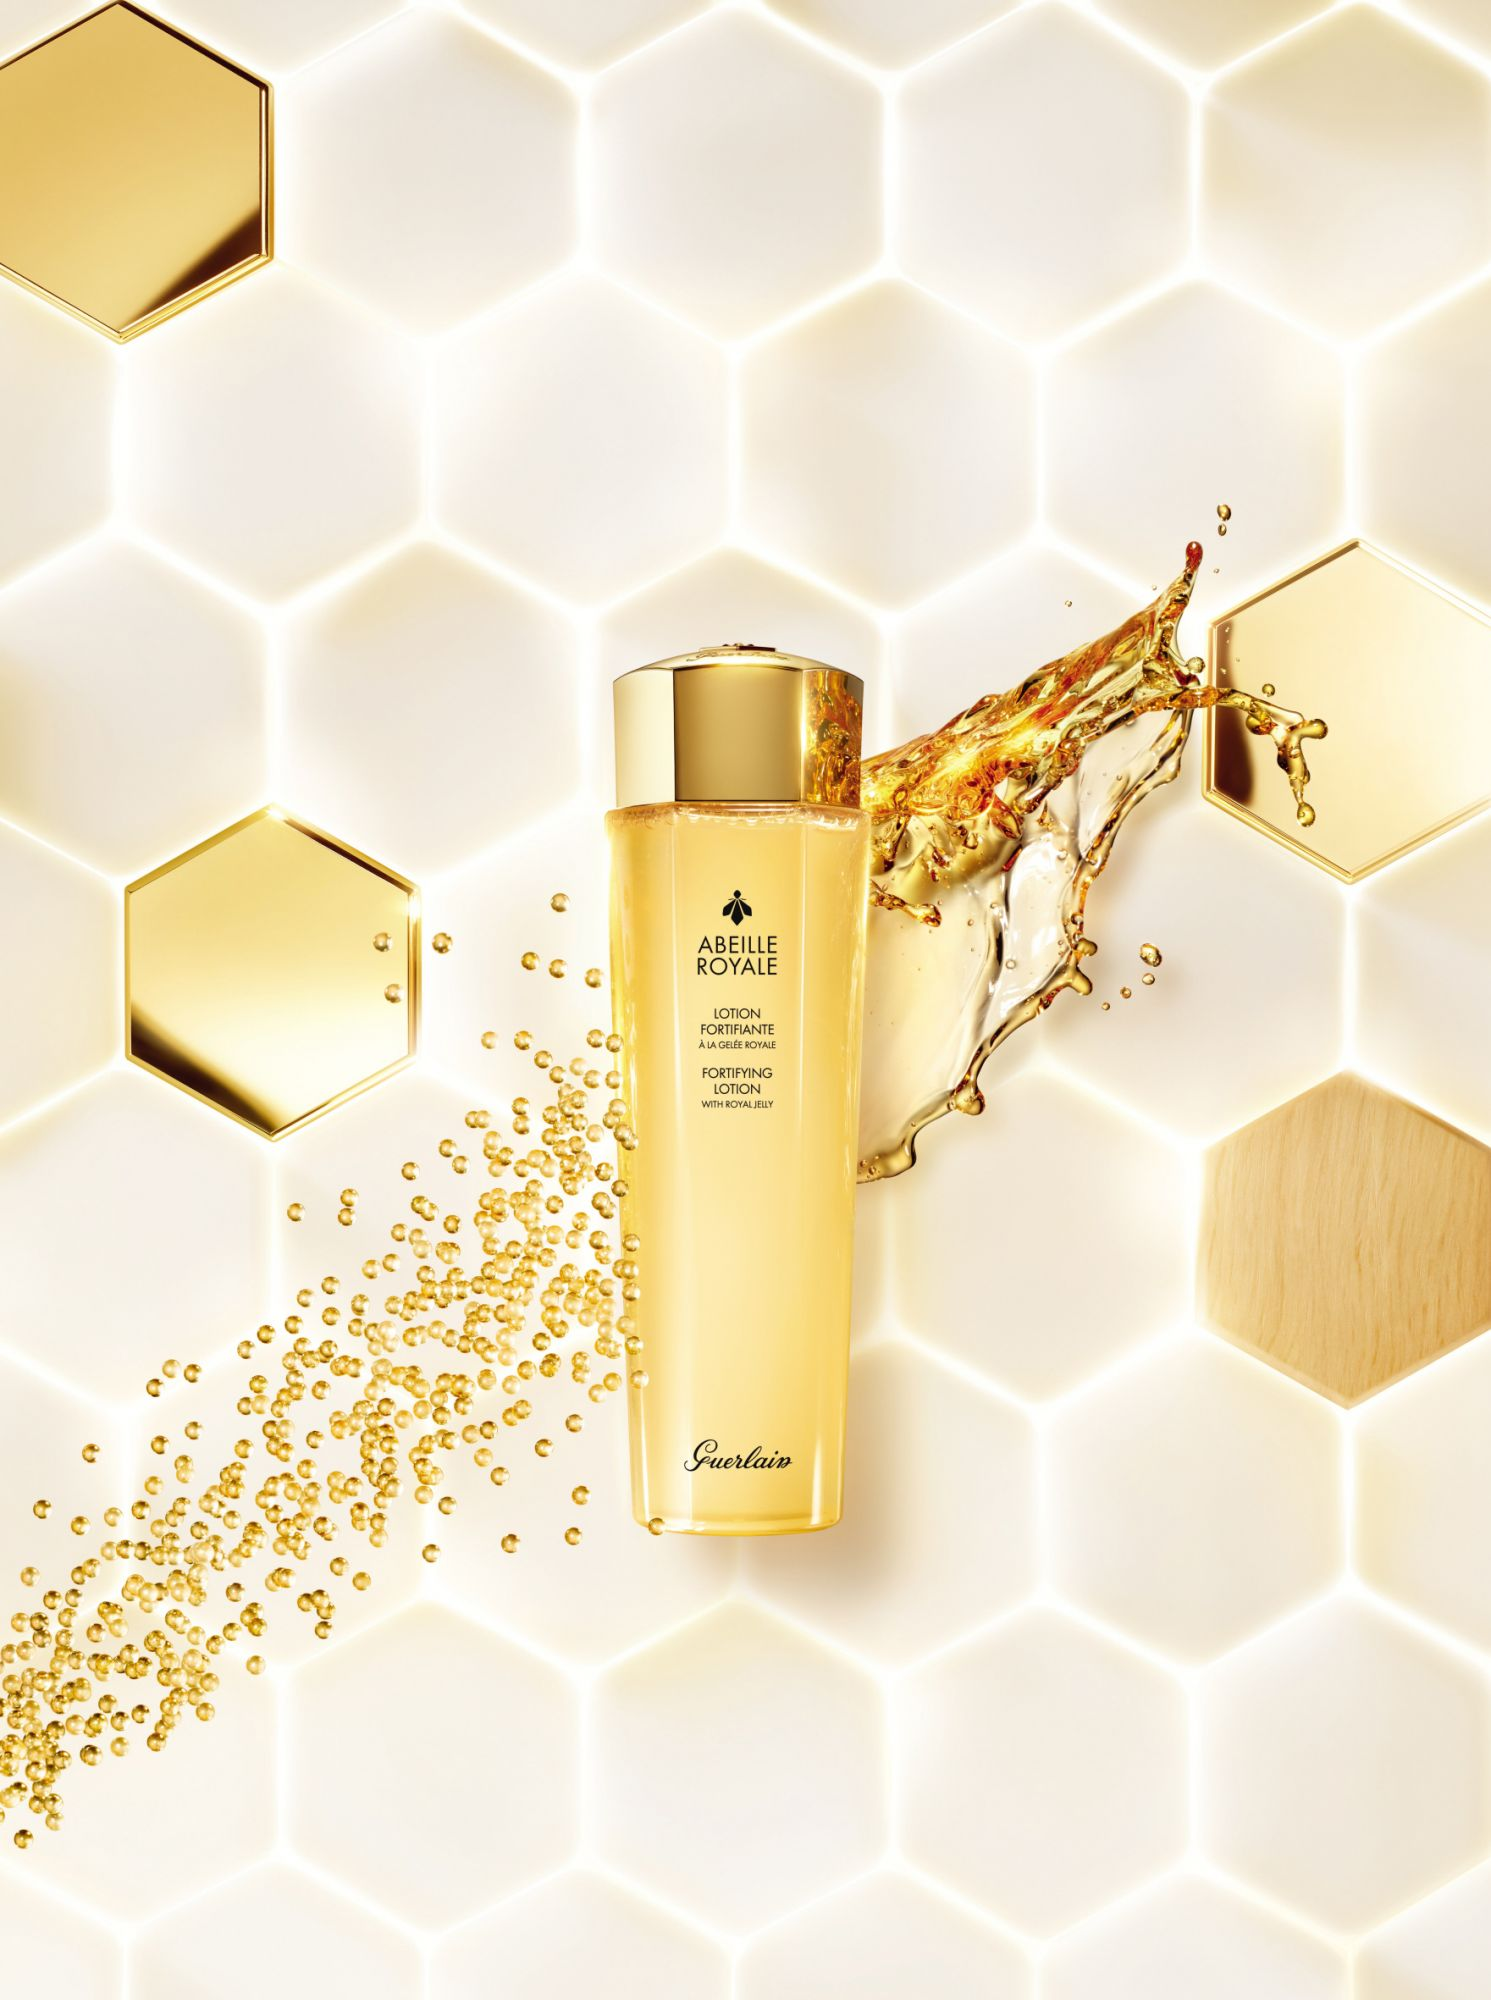 New Guerlain Fortifying Lotion Completes The Abeille Royale Skincare Routine